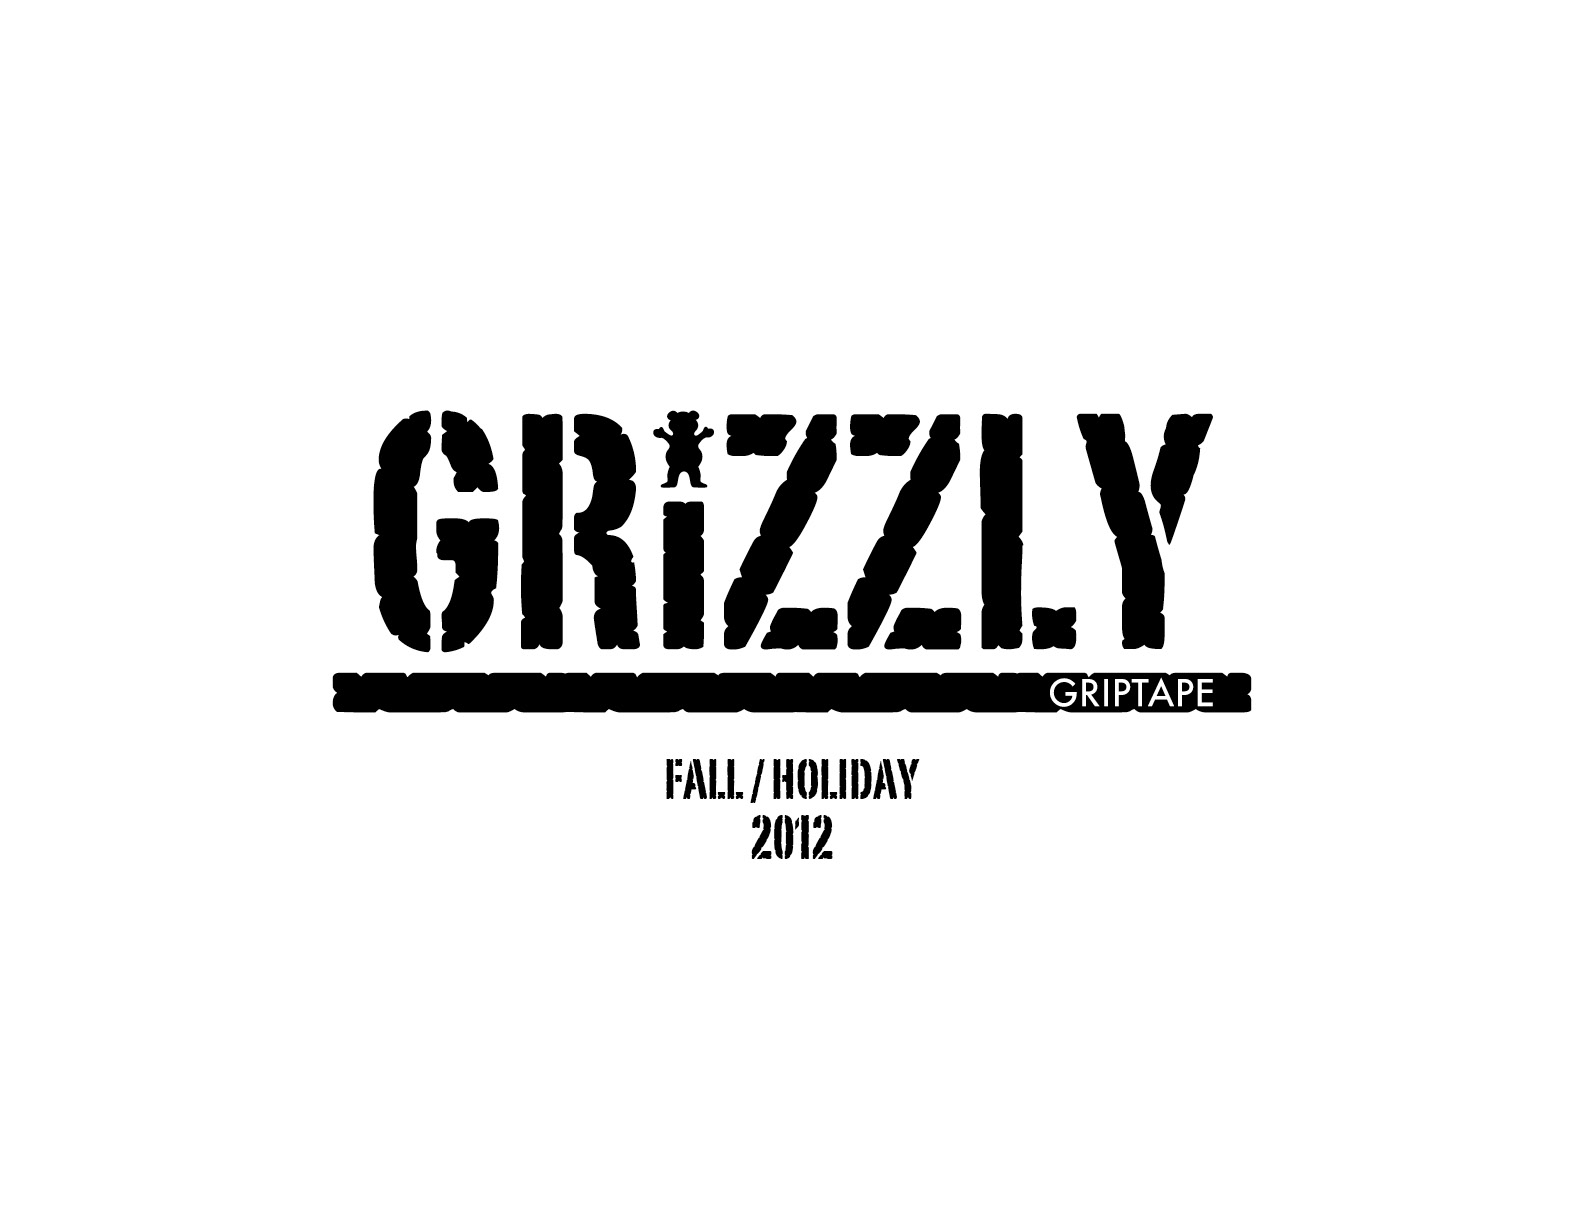 Grizzly Grip Wallpapers 1584x1224